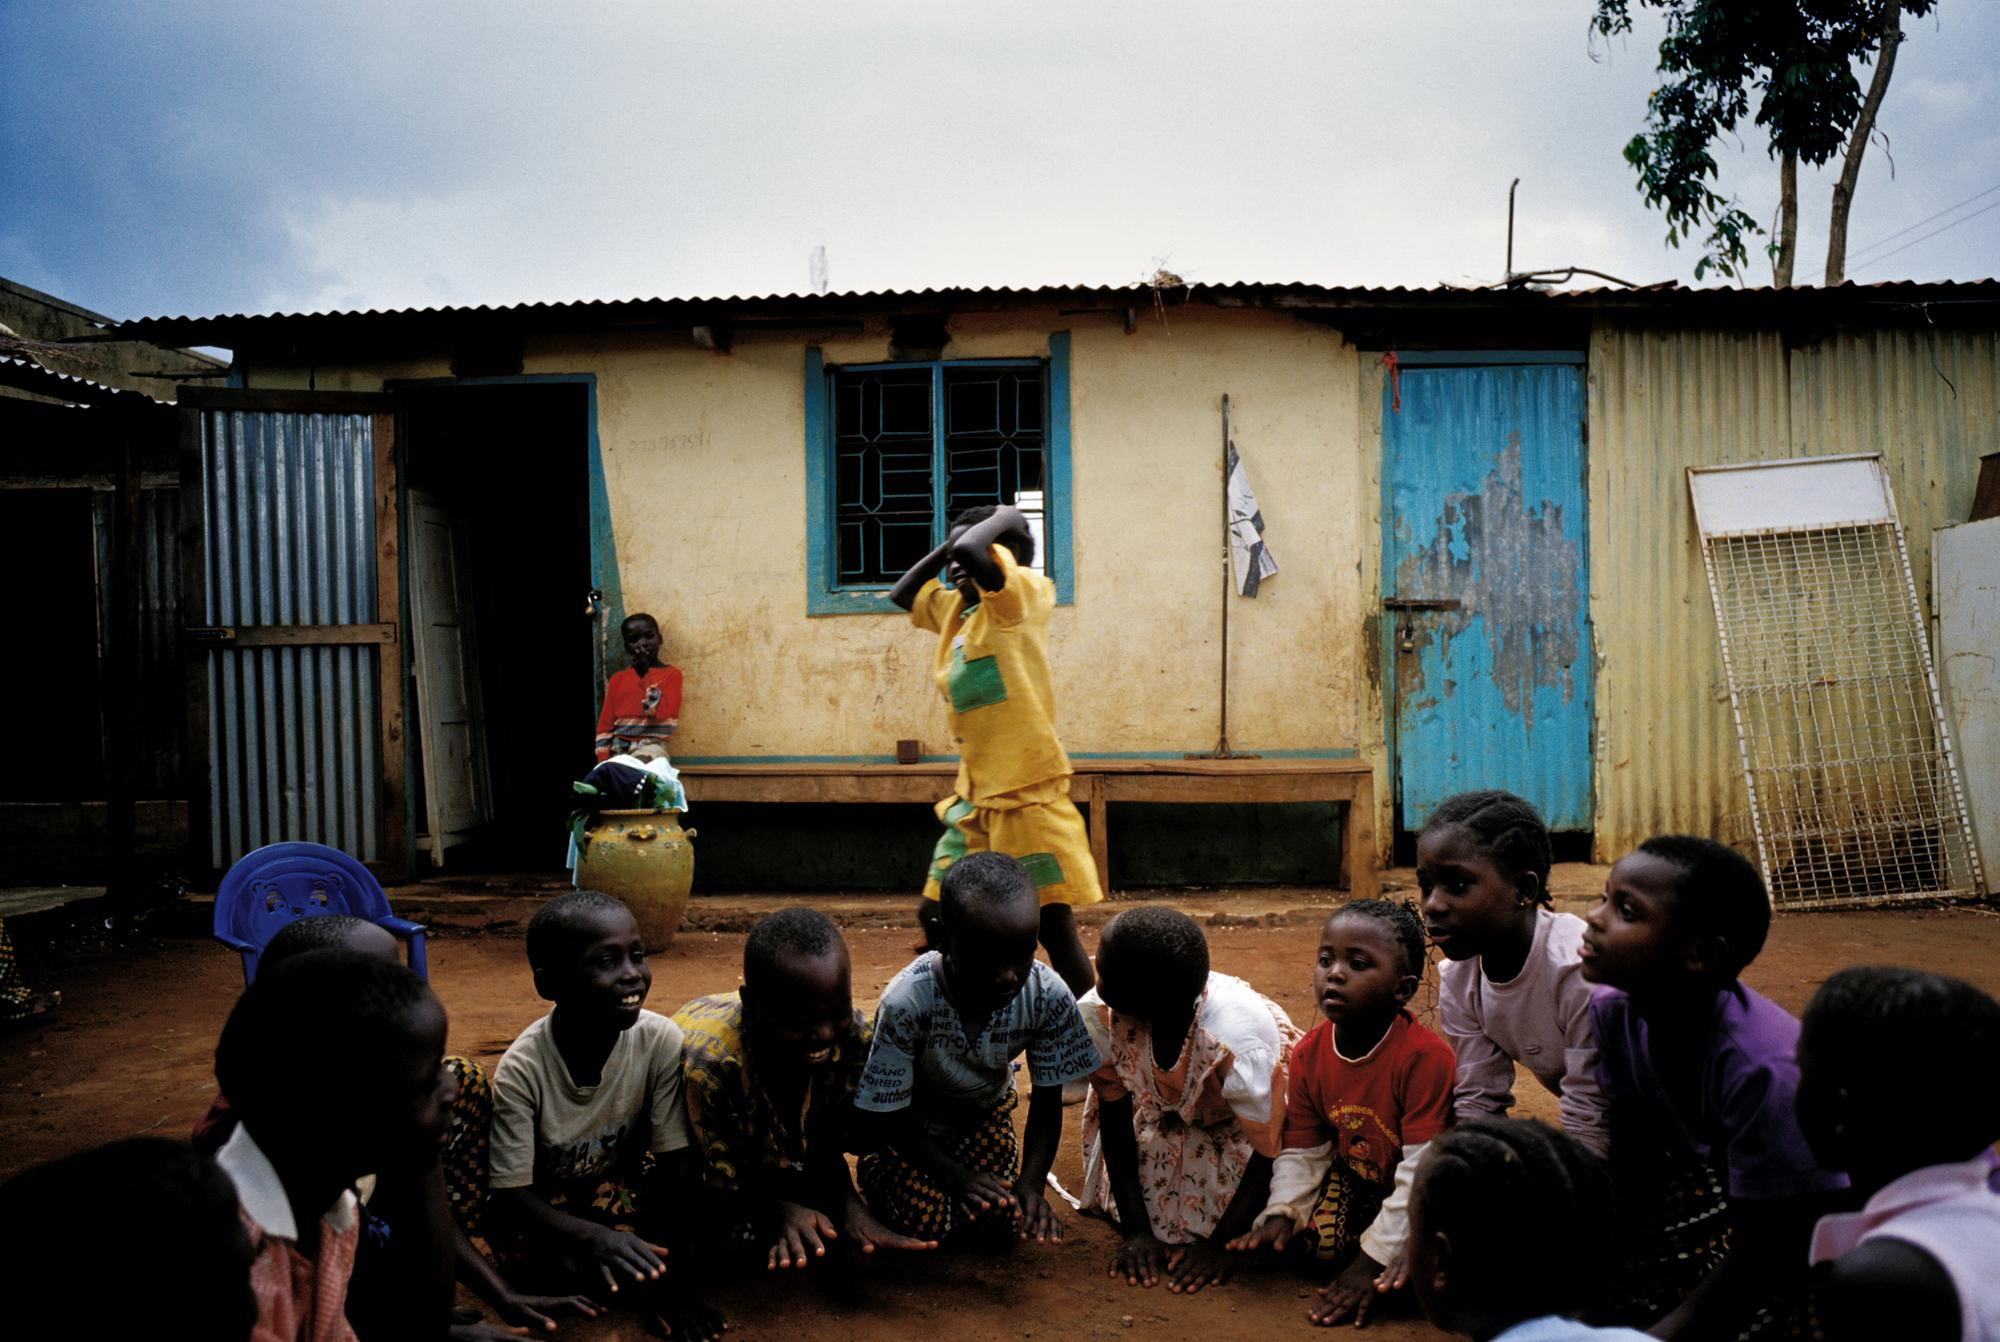 KENYA Busia Children playing at Busia orphanage. Some of the children, including Anaklete (standing, in yellow), are HIV positive and receive antiretroviral (ARV) drugs as part of a project run by Medecins Sans Frontieres (MSF) in collaboration with the Ministry of Health.